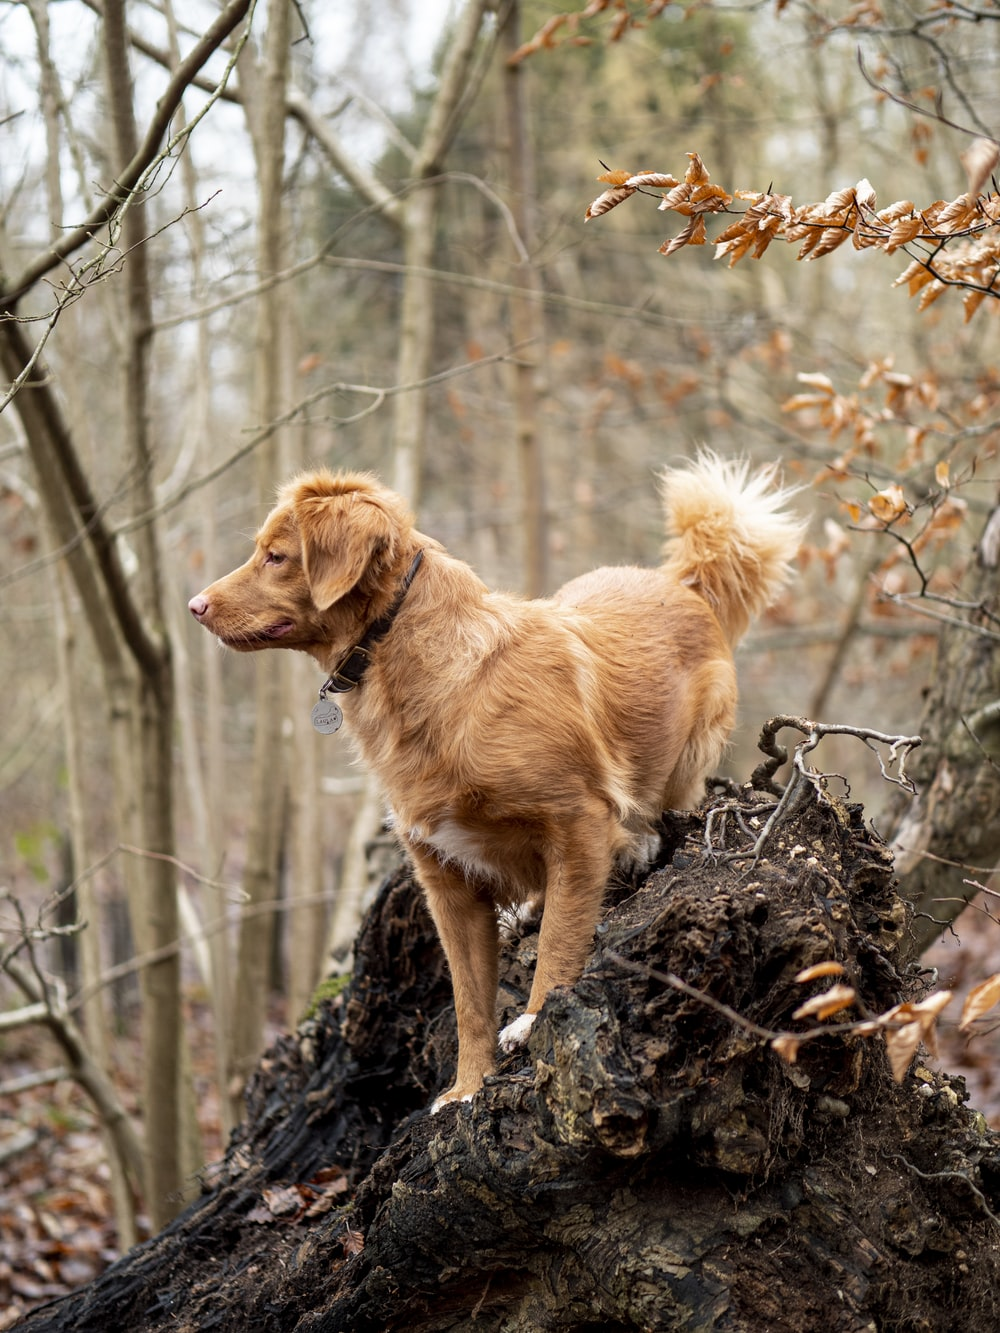 brown short coated medium sized dog on brown tree trunk during daytime